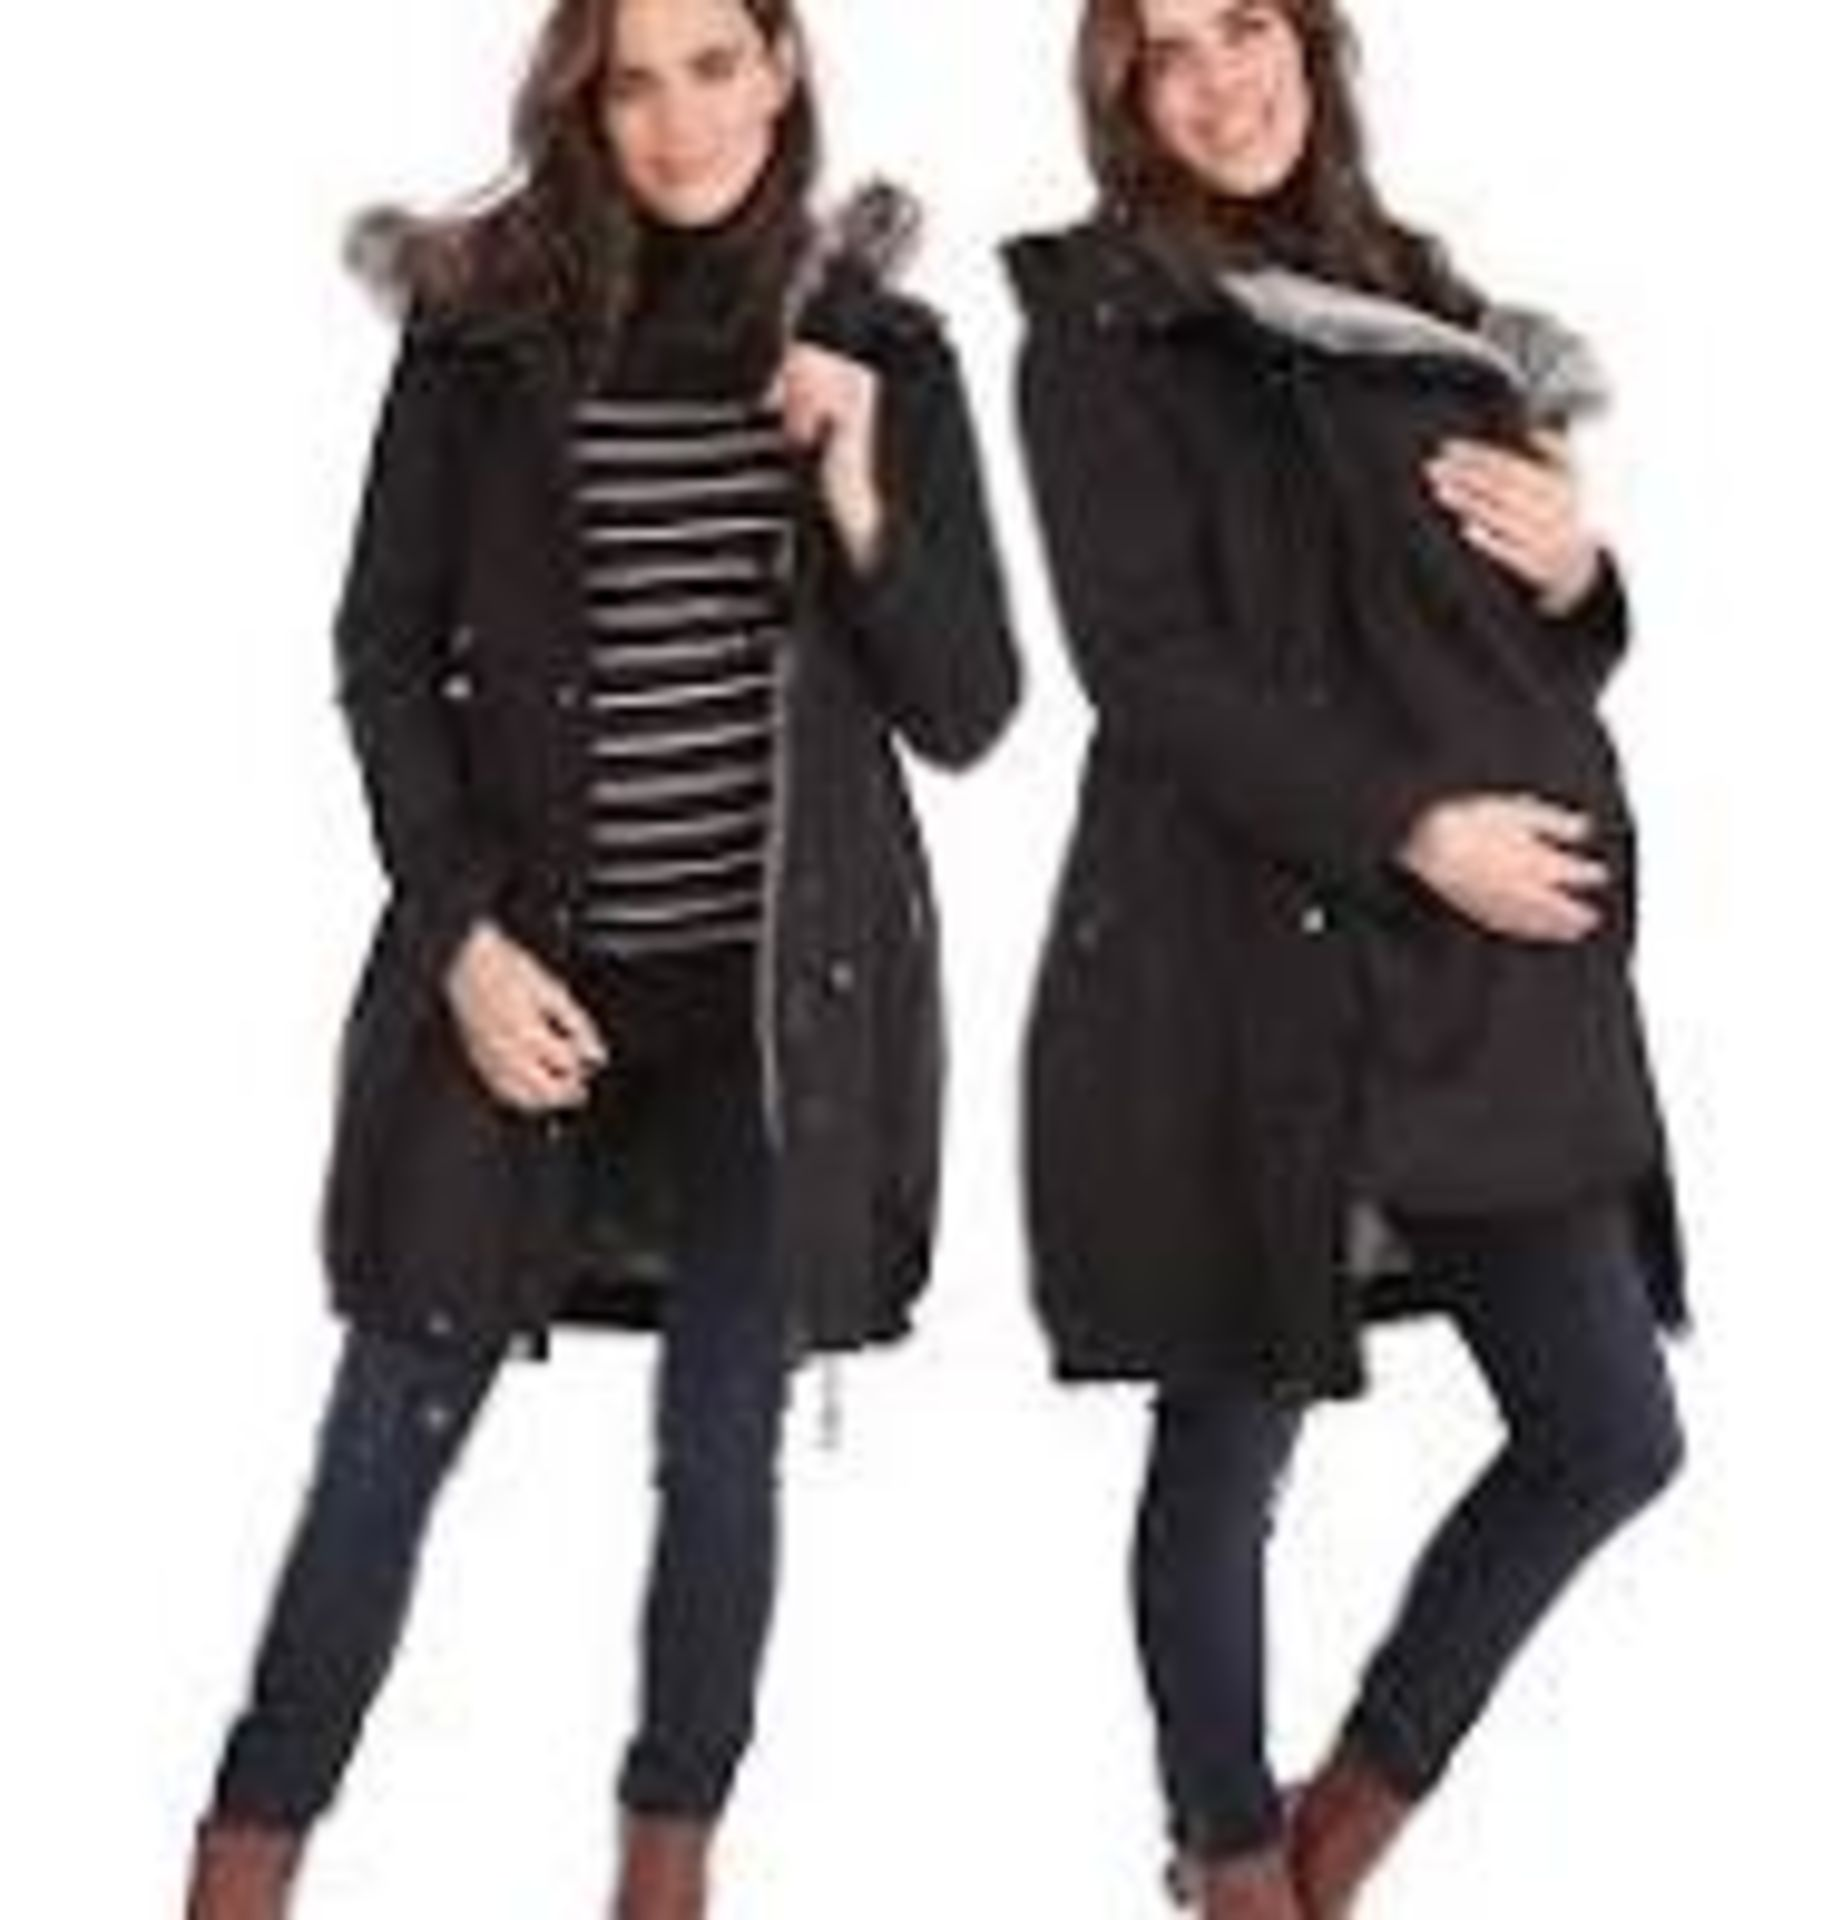 Lot 76 - Seraphine 3 In 1 Kingston Coat RRP £150 (212995) (Pictures Are For Illustration Purposes Only) (